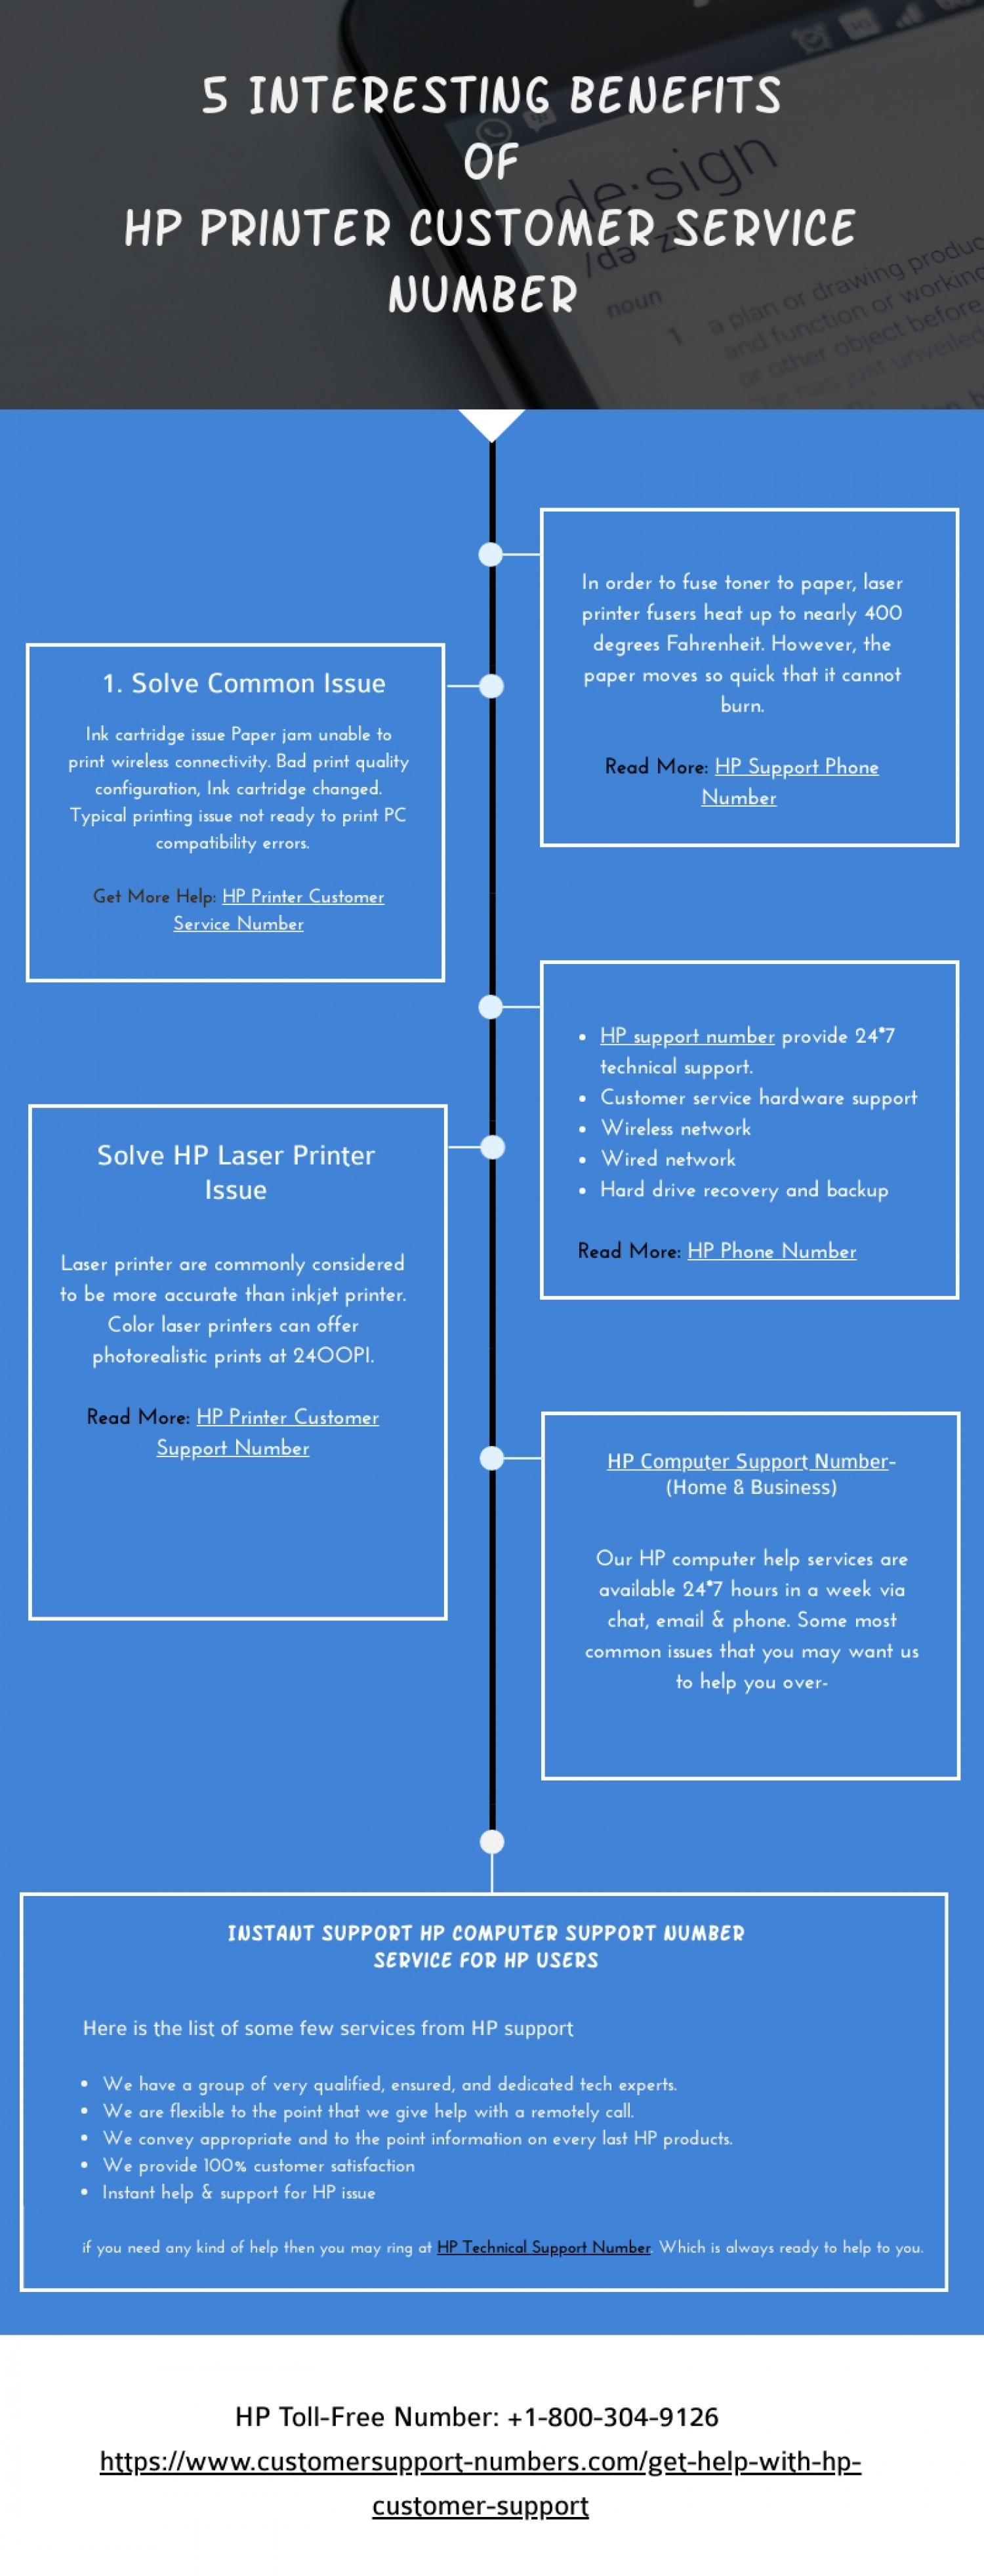 HP Printer Customer Service Number for Solve These Printer Issues Infographic